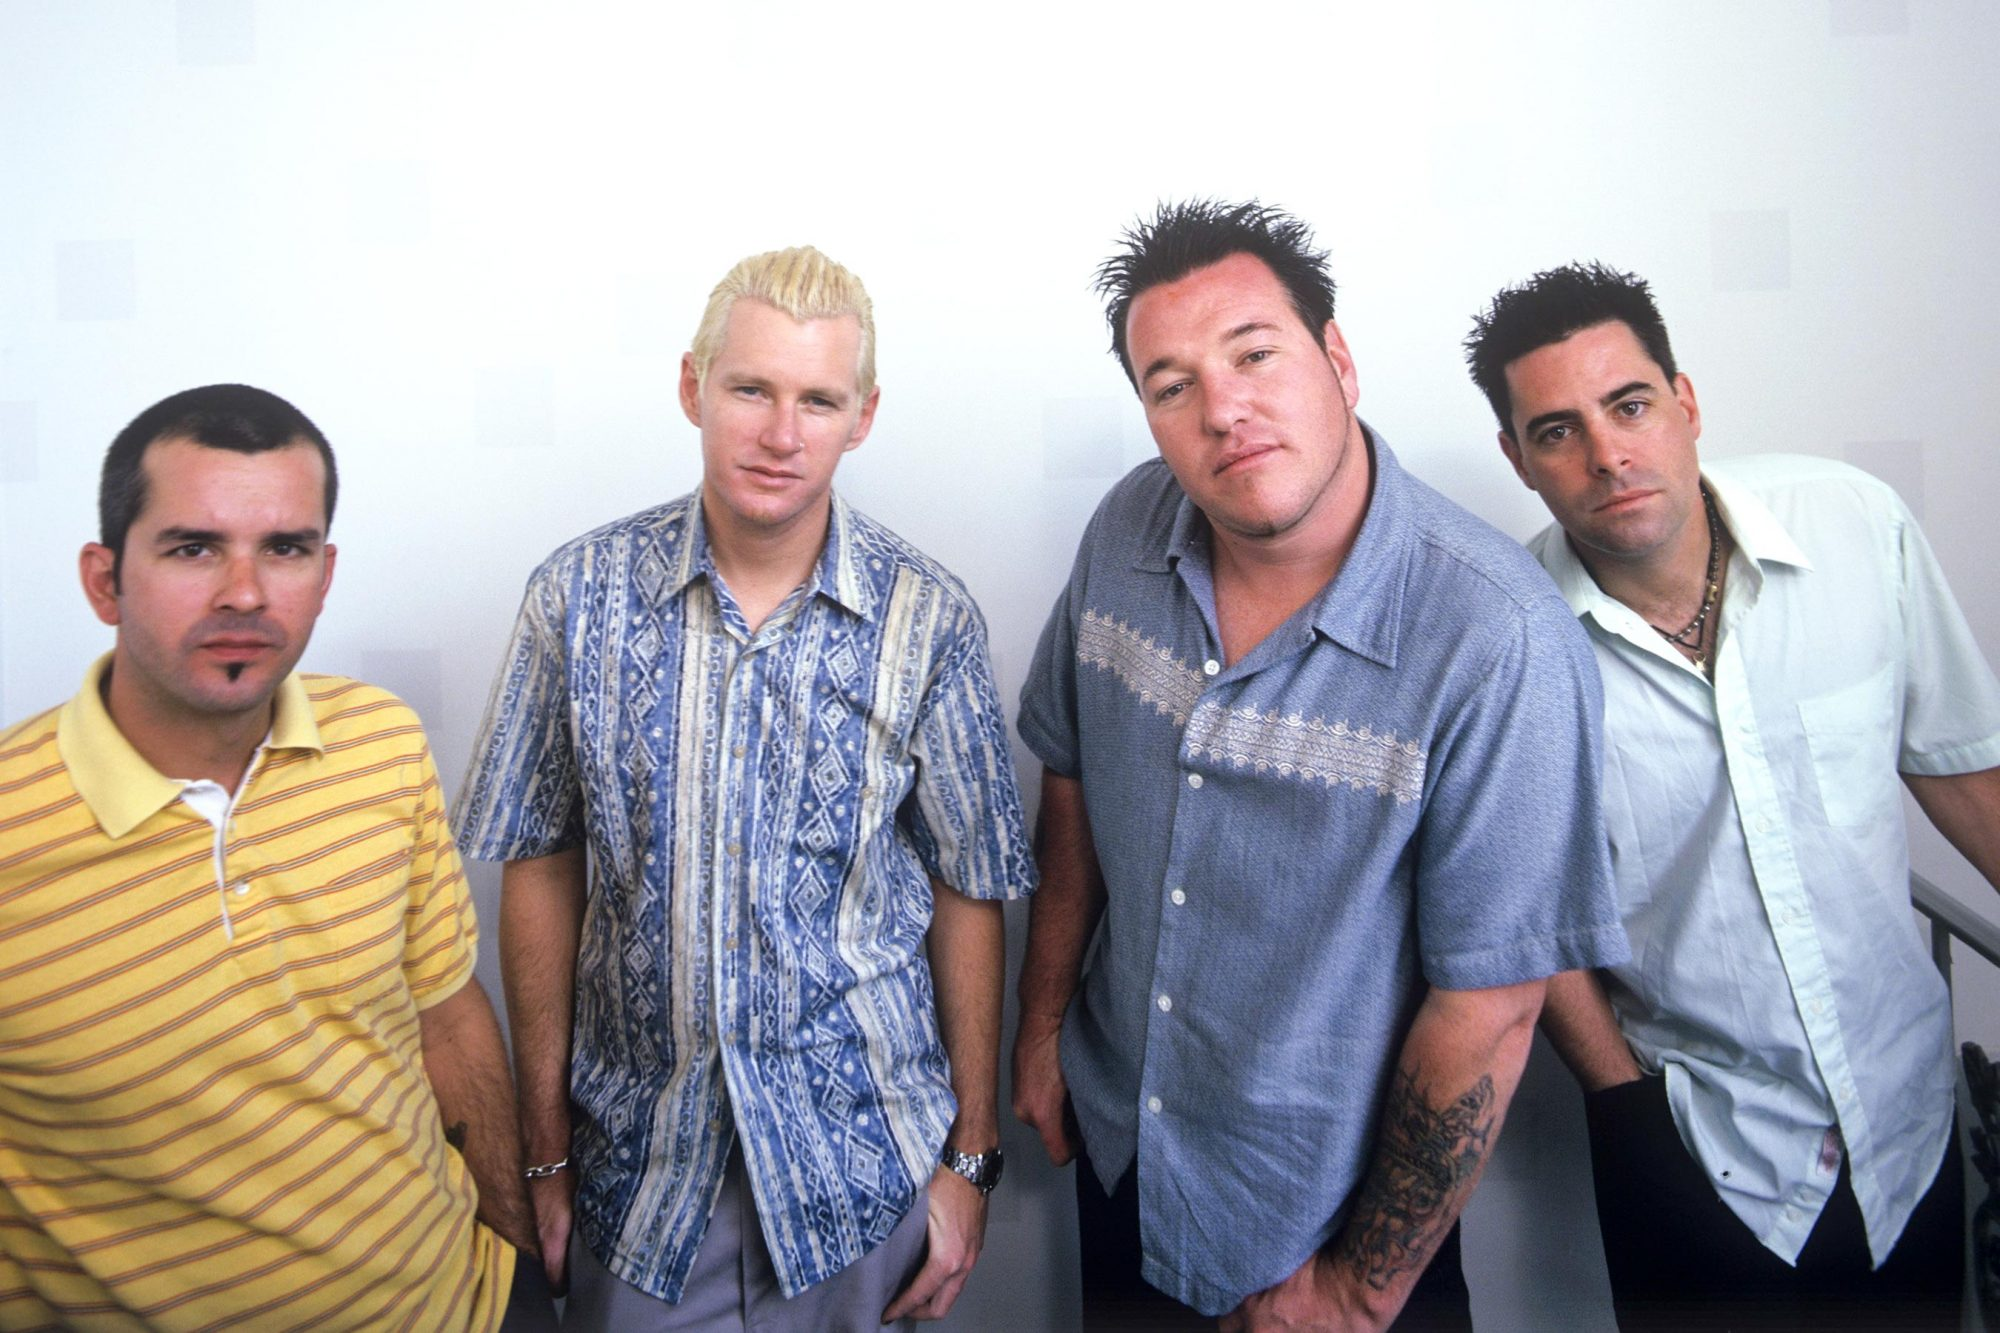 LOS ANGELES - MAY 1999: (EDITORS NOTE: THIS IMAGE WAS CREATED USING COLOR INFRARED FILM) American rock band Smash Mouth (L - R) guitarist Greg Camp, drummer Kevin Coleman, bassist Paul De Lisle and vocalist Steven Harwell pose for a May 1999 portrait in Los Angeles, California. (Photo by Bob Berg/Getty Images)